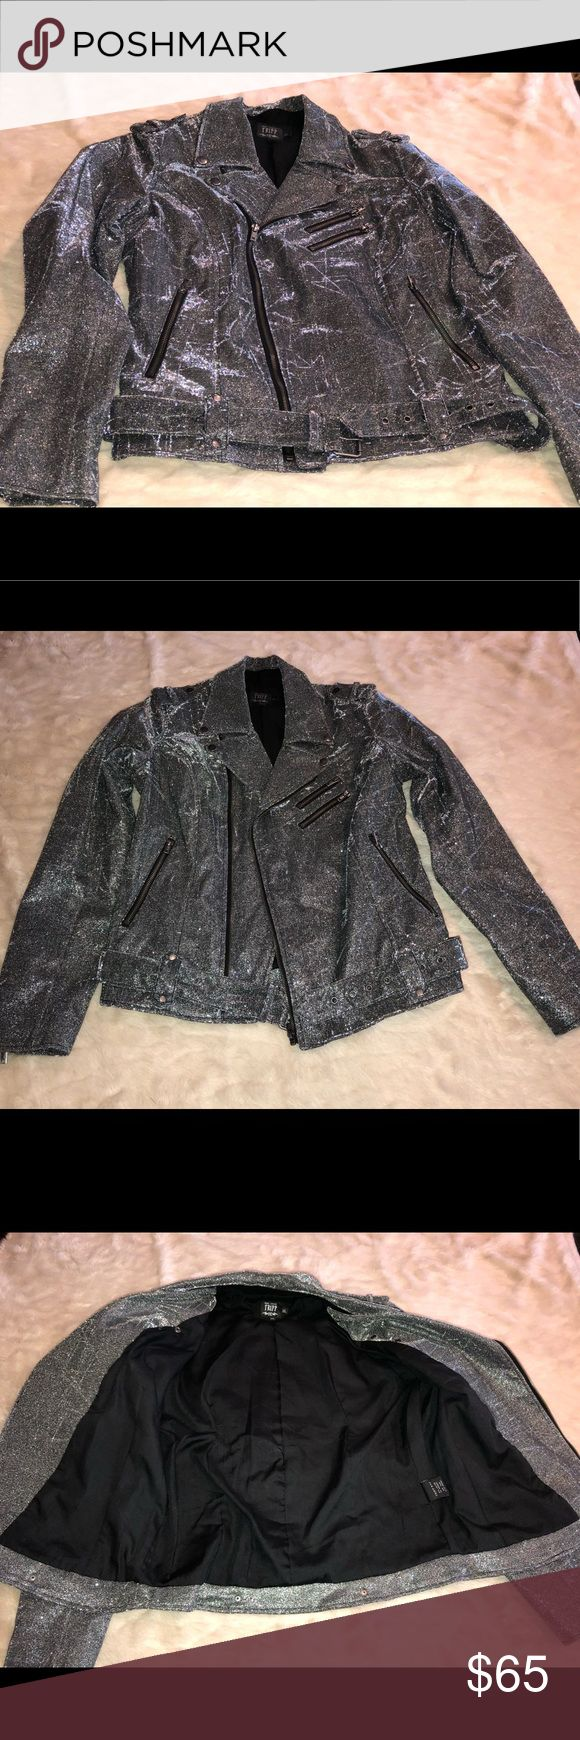 Tripp NYC silver shine on moto jacket glitter XL Worn literally only 3 times( I lost a lot of weight and doesn't fit anymore). Tripp shine on silver/gray tinsel moto jacket size XL. Front zip closure with belt with zippers on sleeves. You'll definitely turn heads in this number!  All items come from smoke free home. 🐺Husky friendly environment. All items are kept in plastic containers, but shed happens 😊 Tripp nyc Jackets & Coats